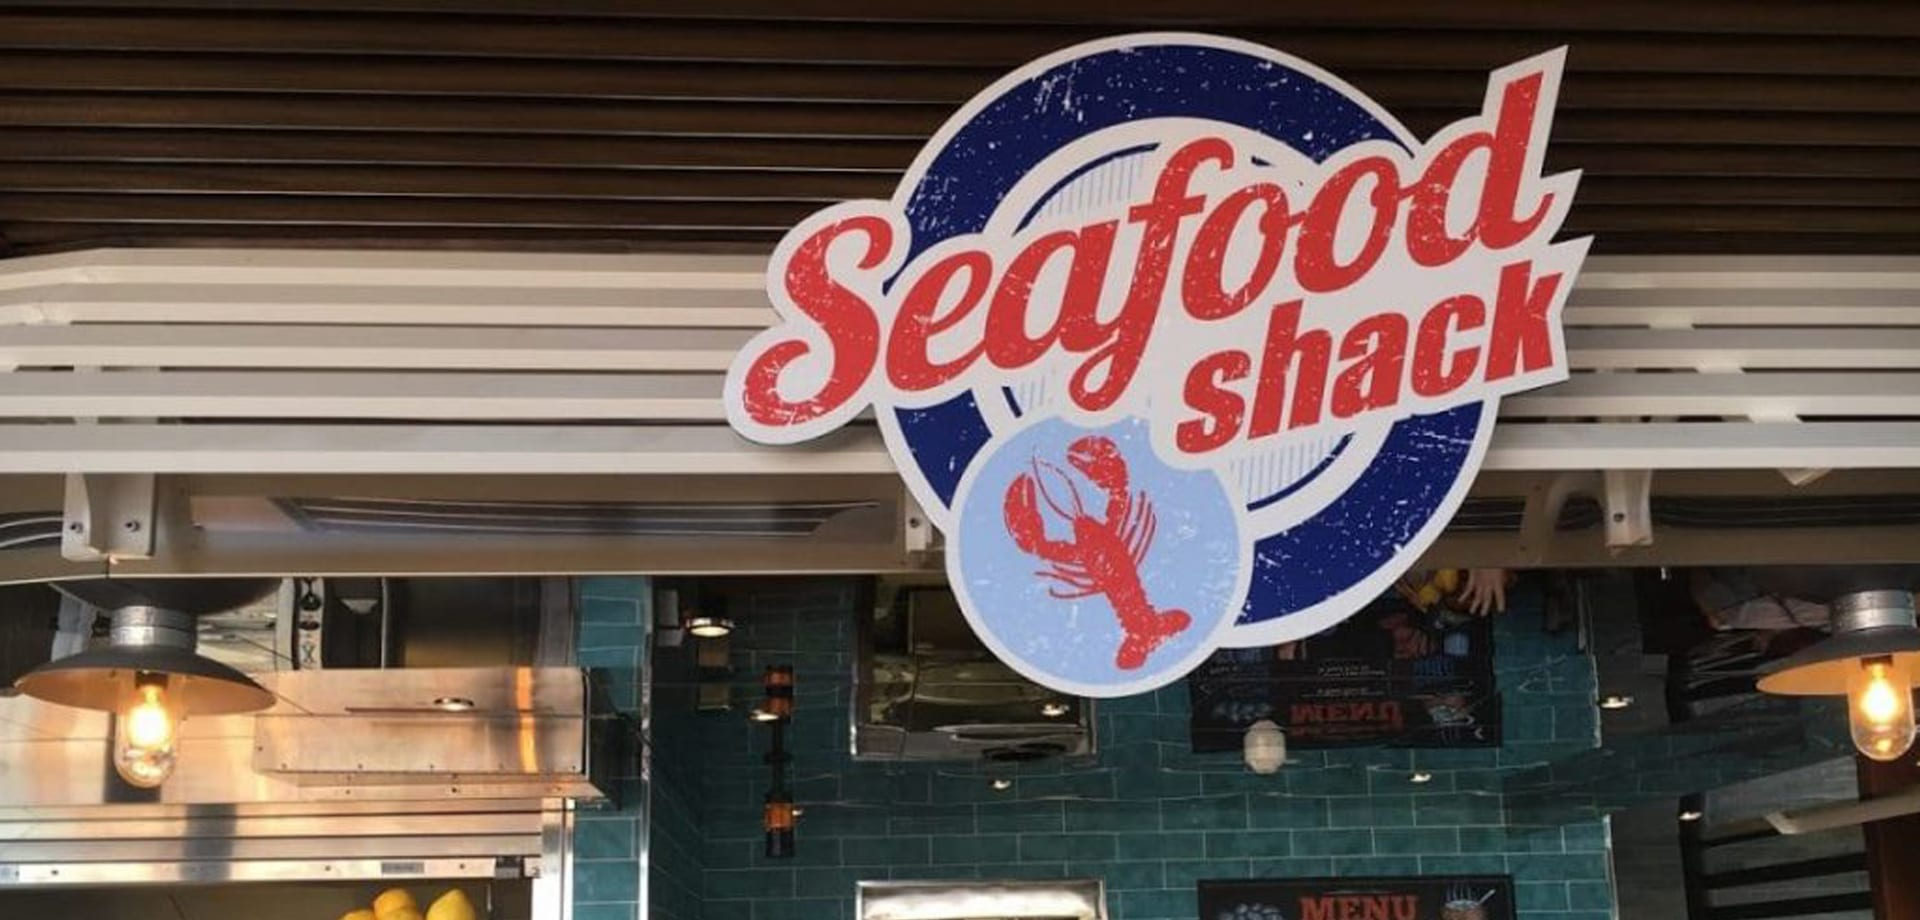 Seafood Shack logo, branding designed by Canyon Creative for Carnival Cruise Line